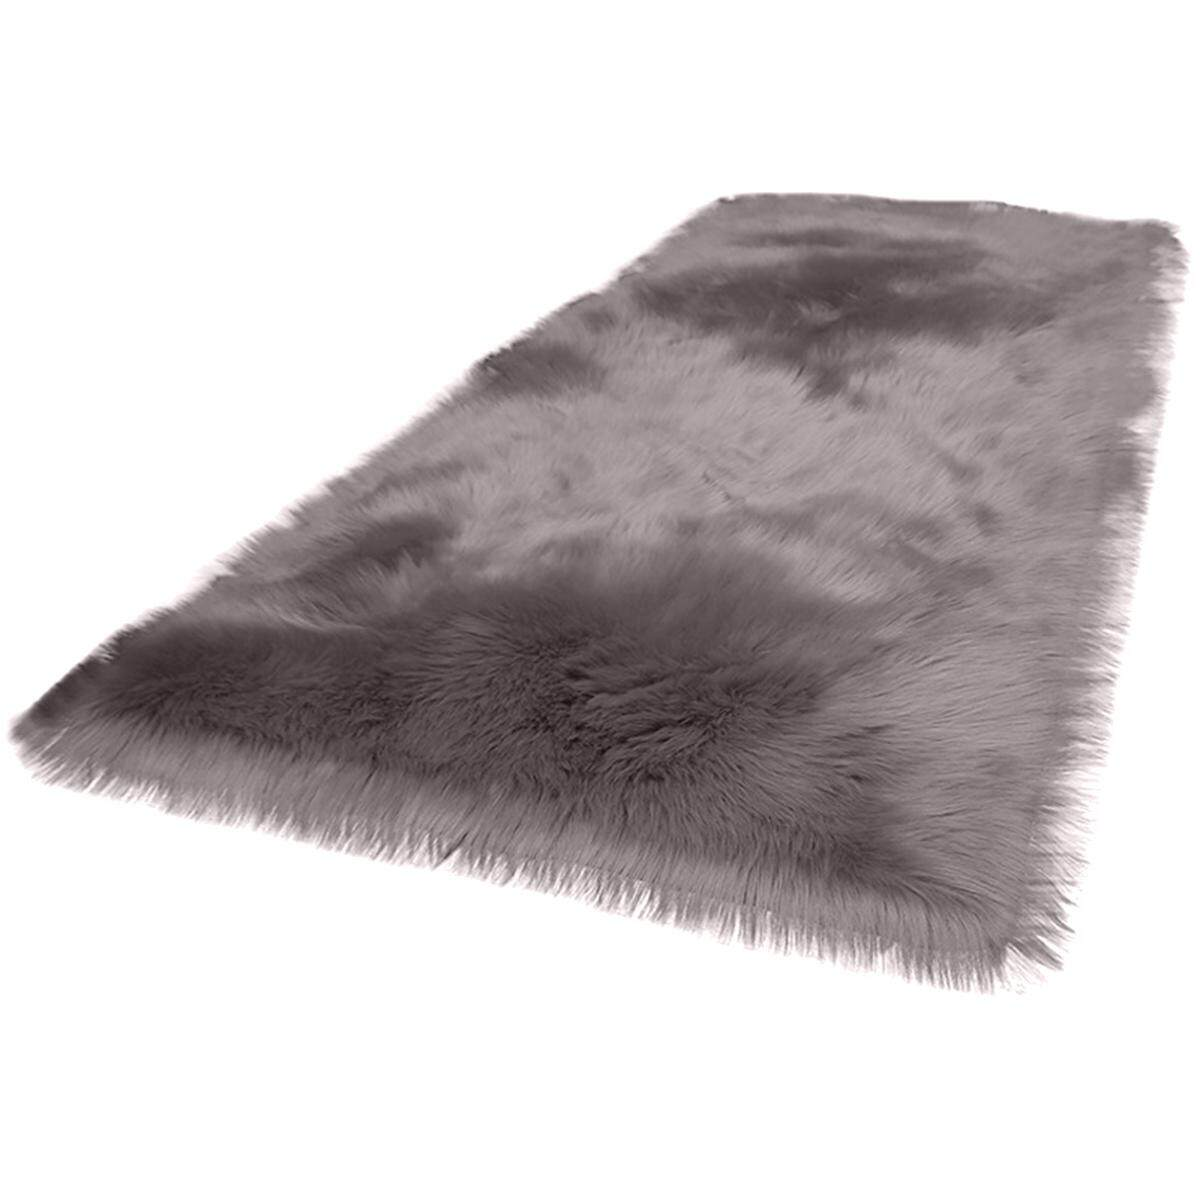 Baby Playmats Wool Imitation Sheepskin Rugs Faux Fur Bedroom Shaggy Carpet Window Mats Livingroom Decor Sofa Office Mats Baby Gyms & Playmats Activity & Gear